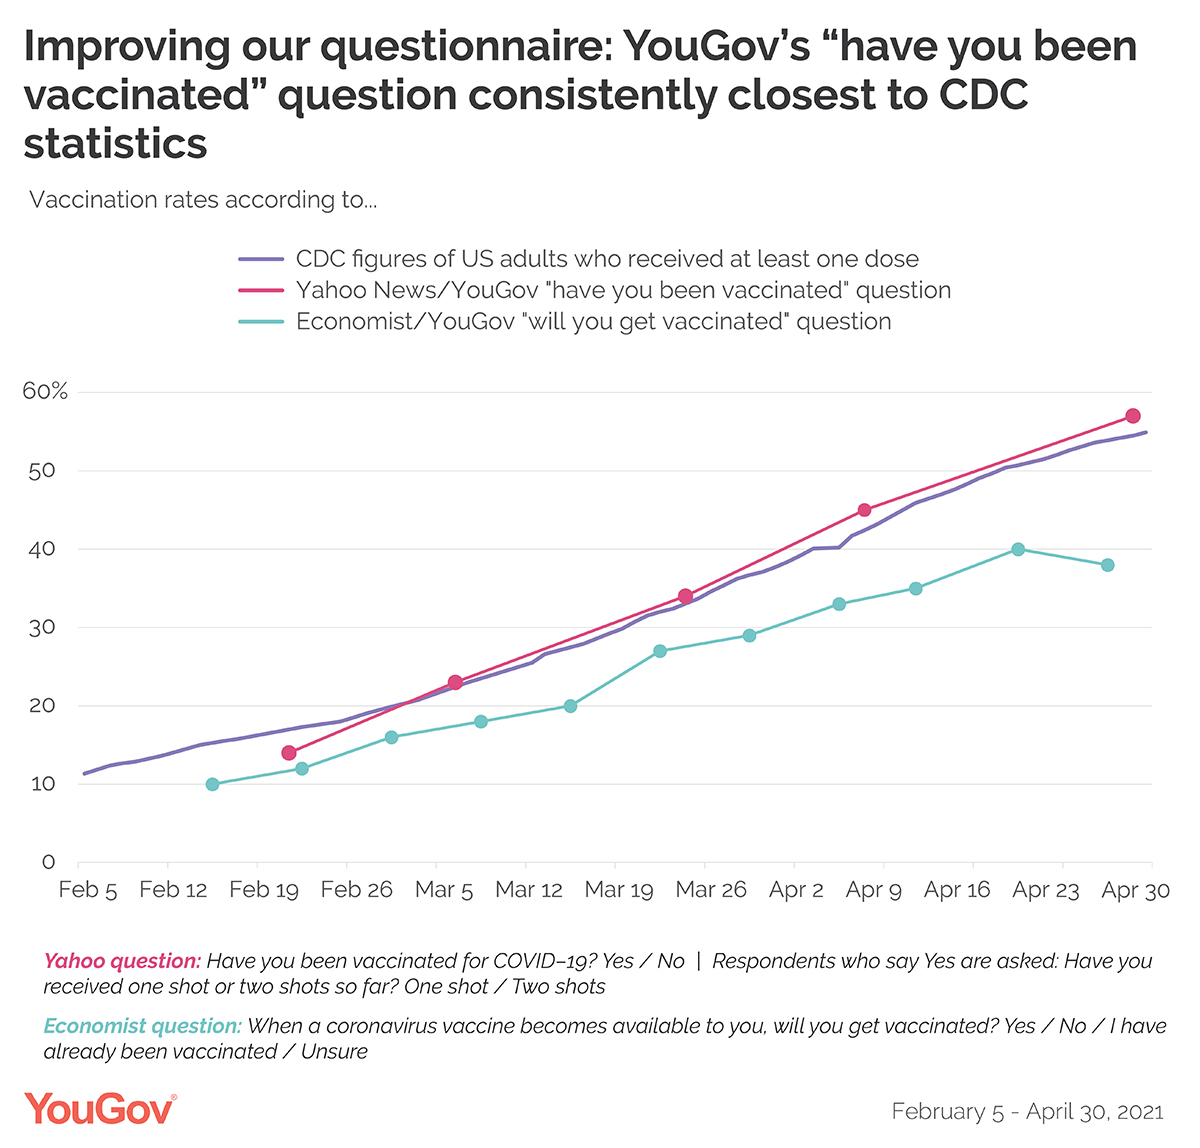 """YouGov's """"have you been vaccinated"""" question consistently closest to CDC statistics"""